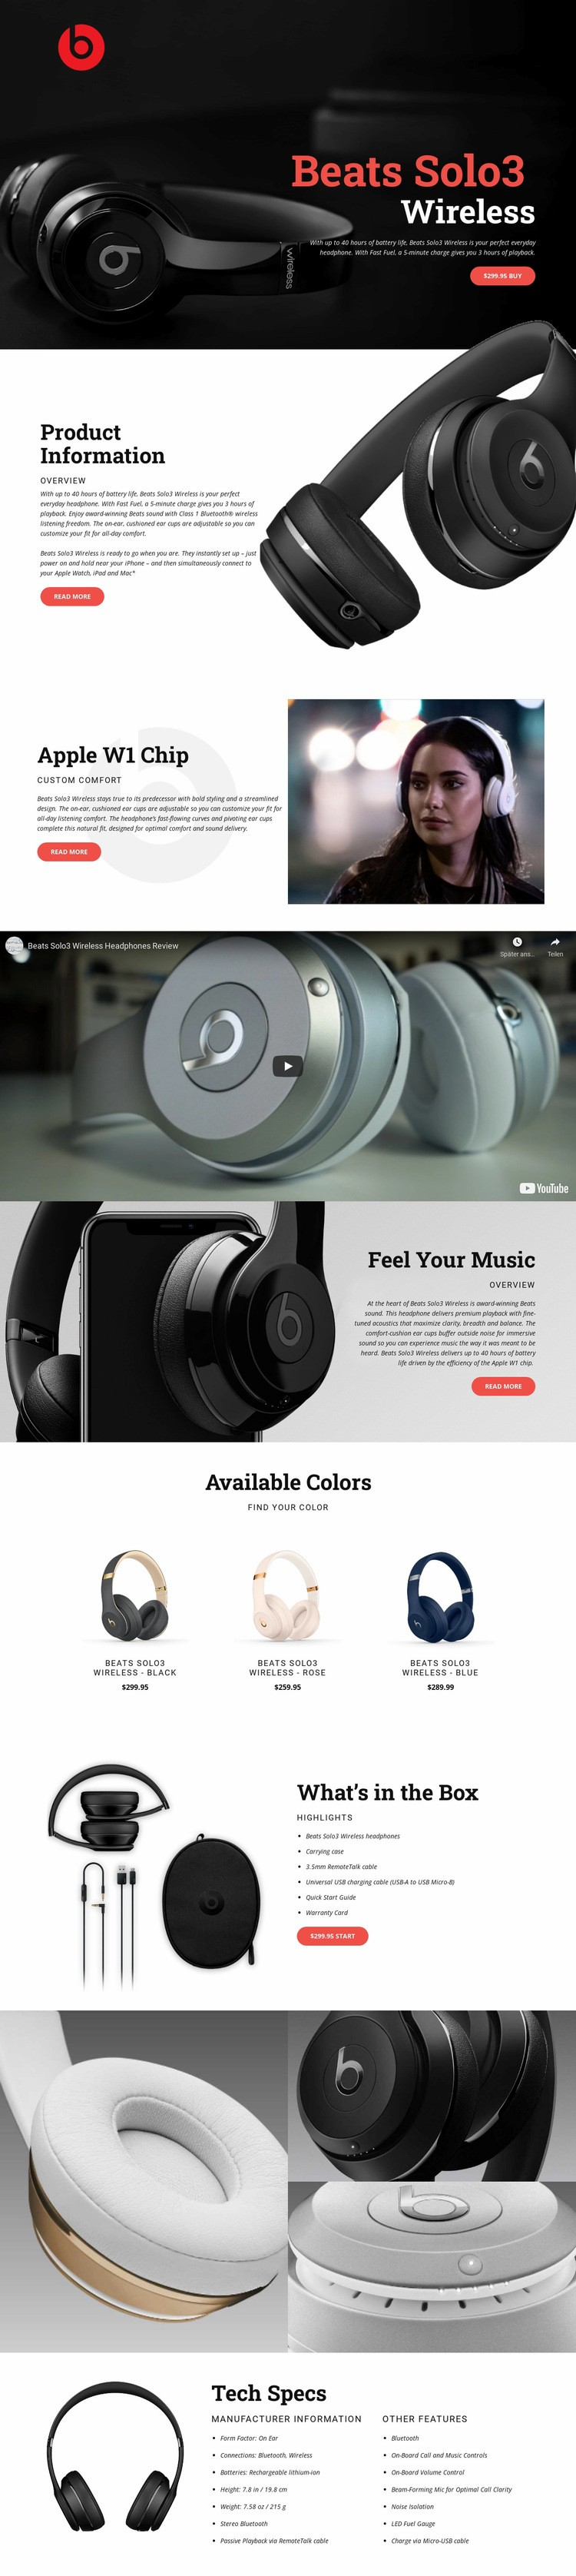 Outstanding quality of music Html Code Example